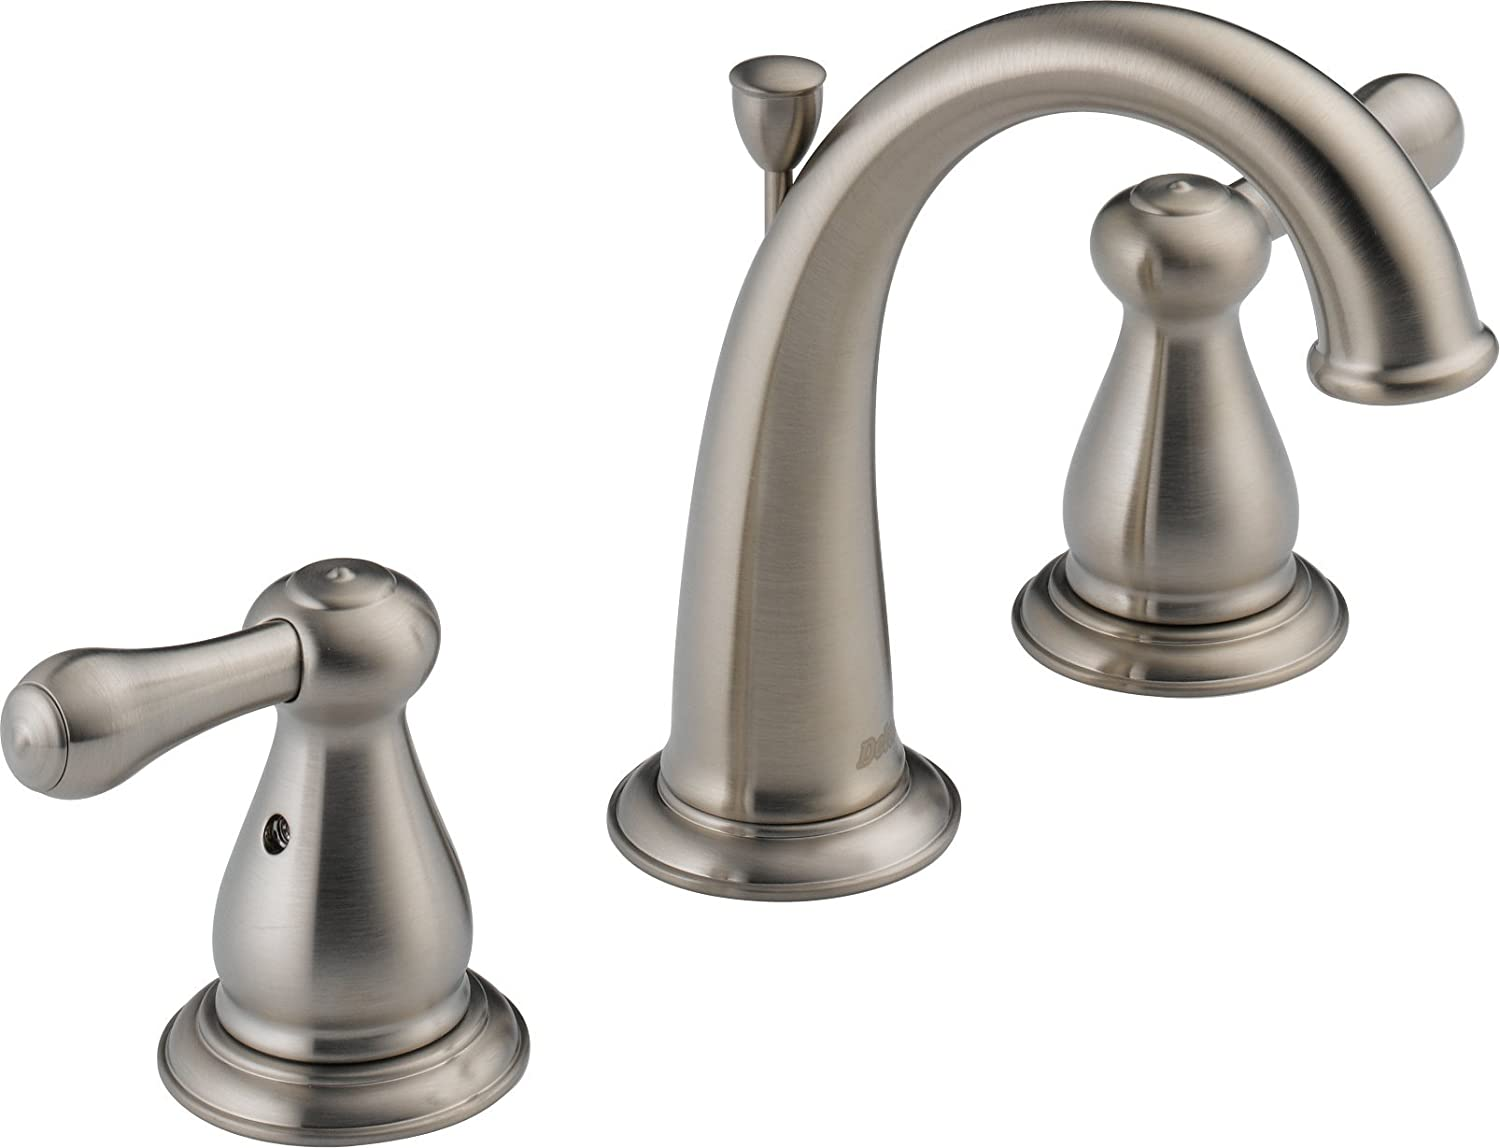 sink design handle sing decor ideas impressive bath for price faucets centerset attractive stunning with delta nickel bathroom single inspirative shower waterfall faucet pfister and